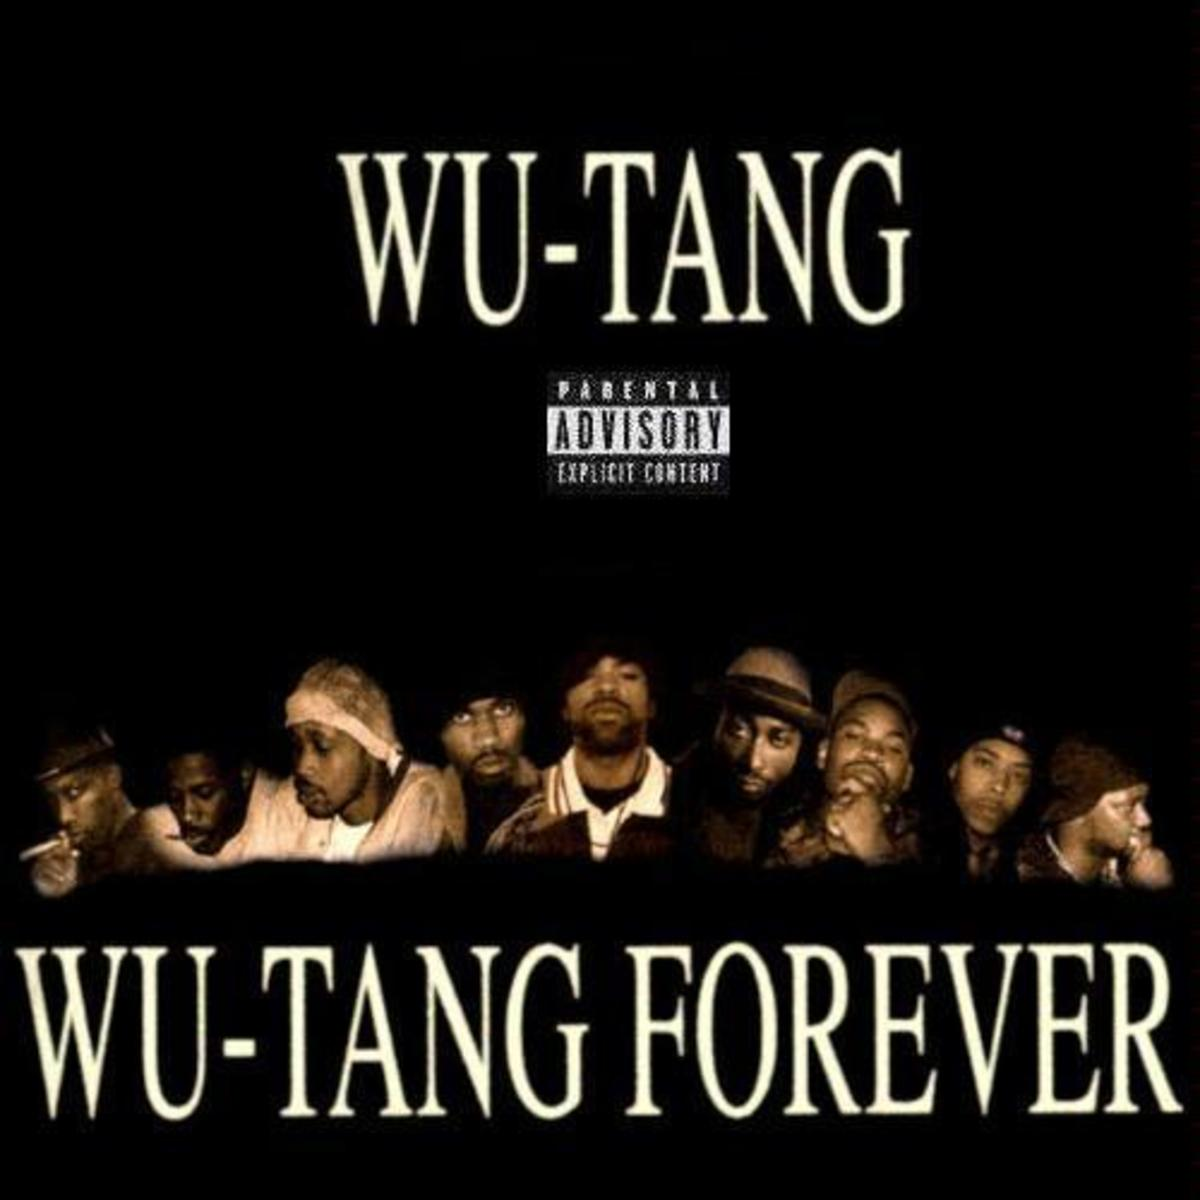 Random WuTang Clan Tattoo on The Leftovers Explained  Tattoo Ideas Artists and Models